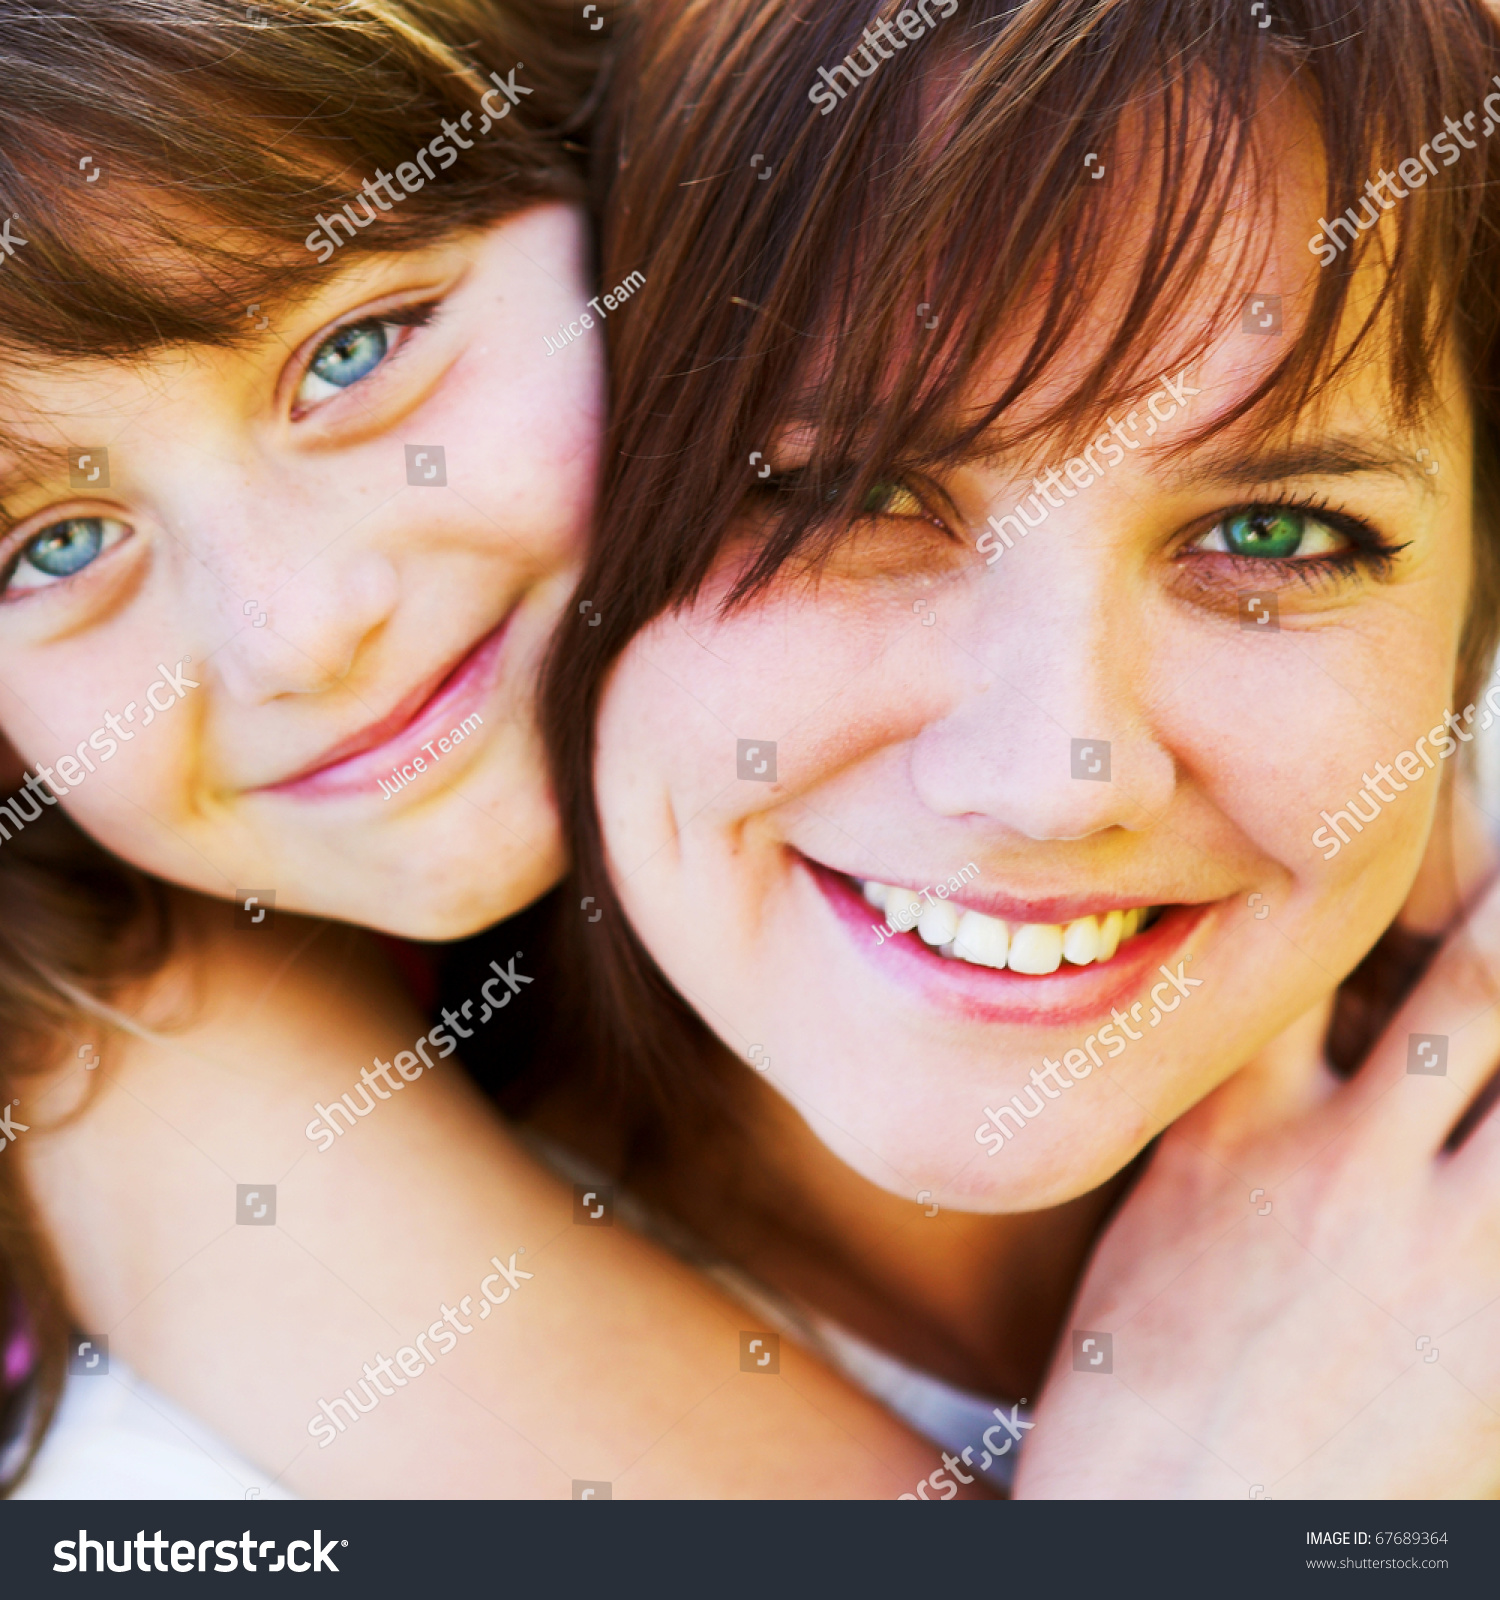 winston single parent personals Winston's best 100% free dating site for single parents join our online community of oregon single parents and meet people like you through our free winston single parent personal ads and online chat rooms.